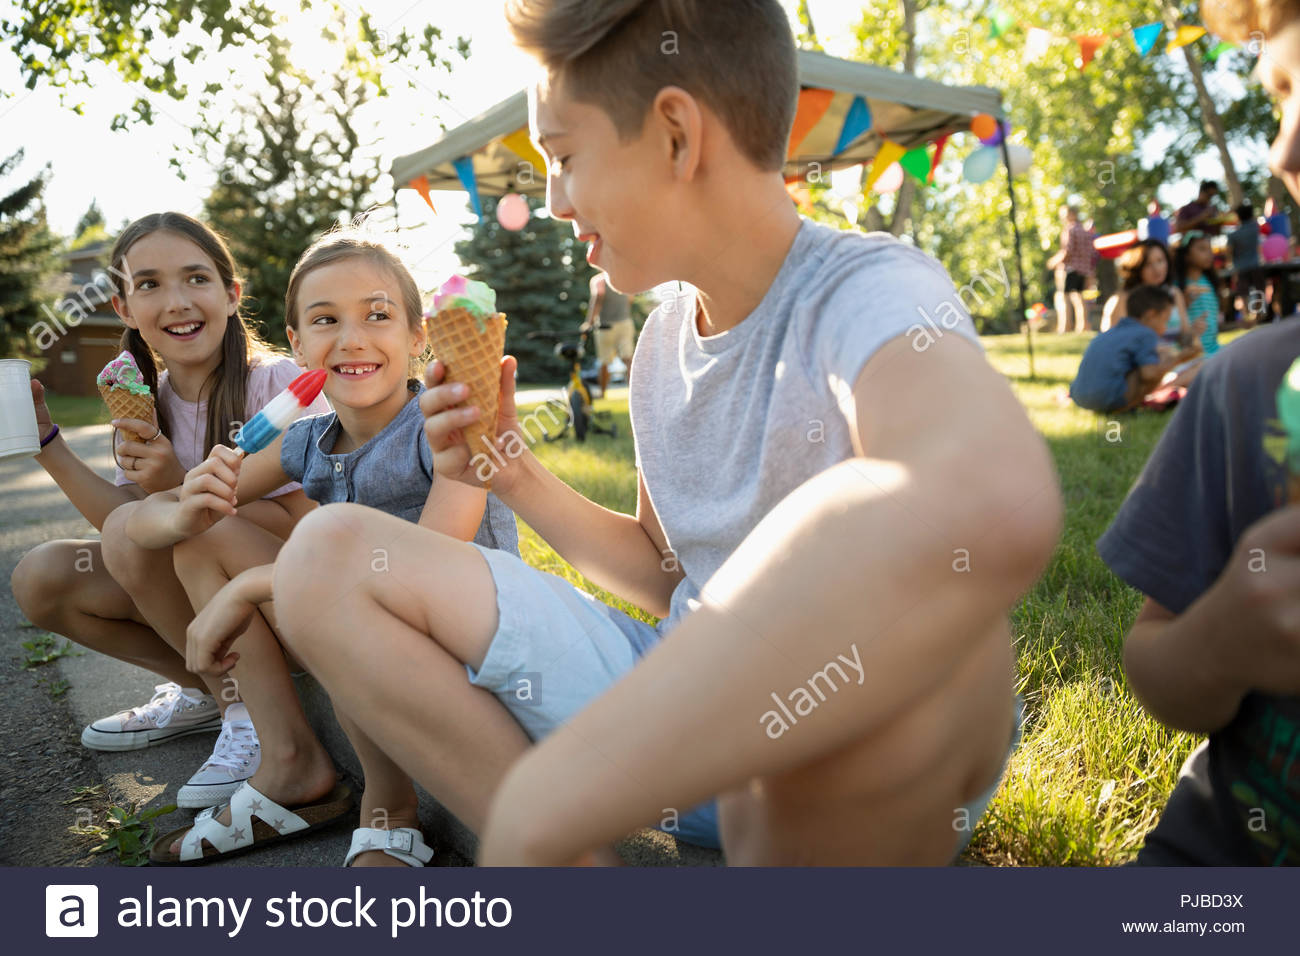 Kids eating ice cream cones and flavored ice at summer neighborhood block party in park - Stock Image